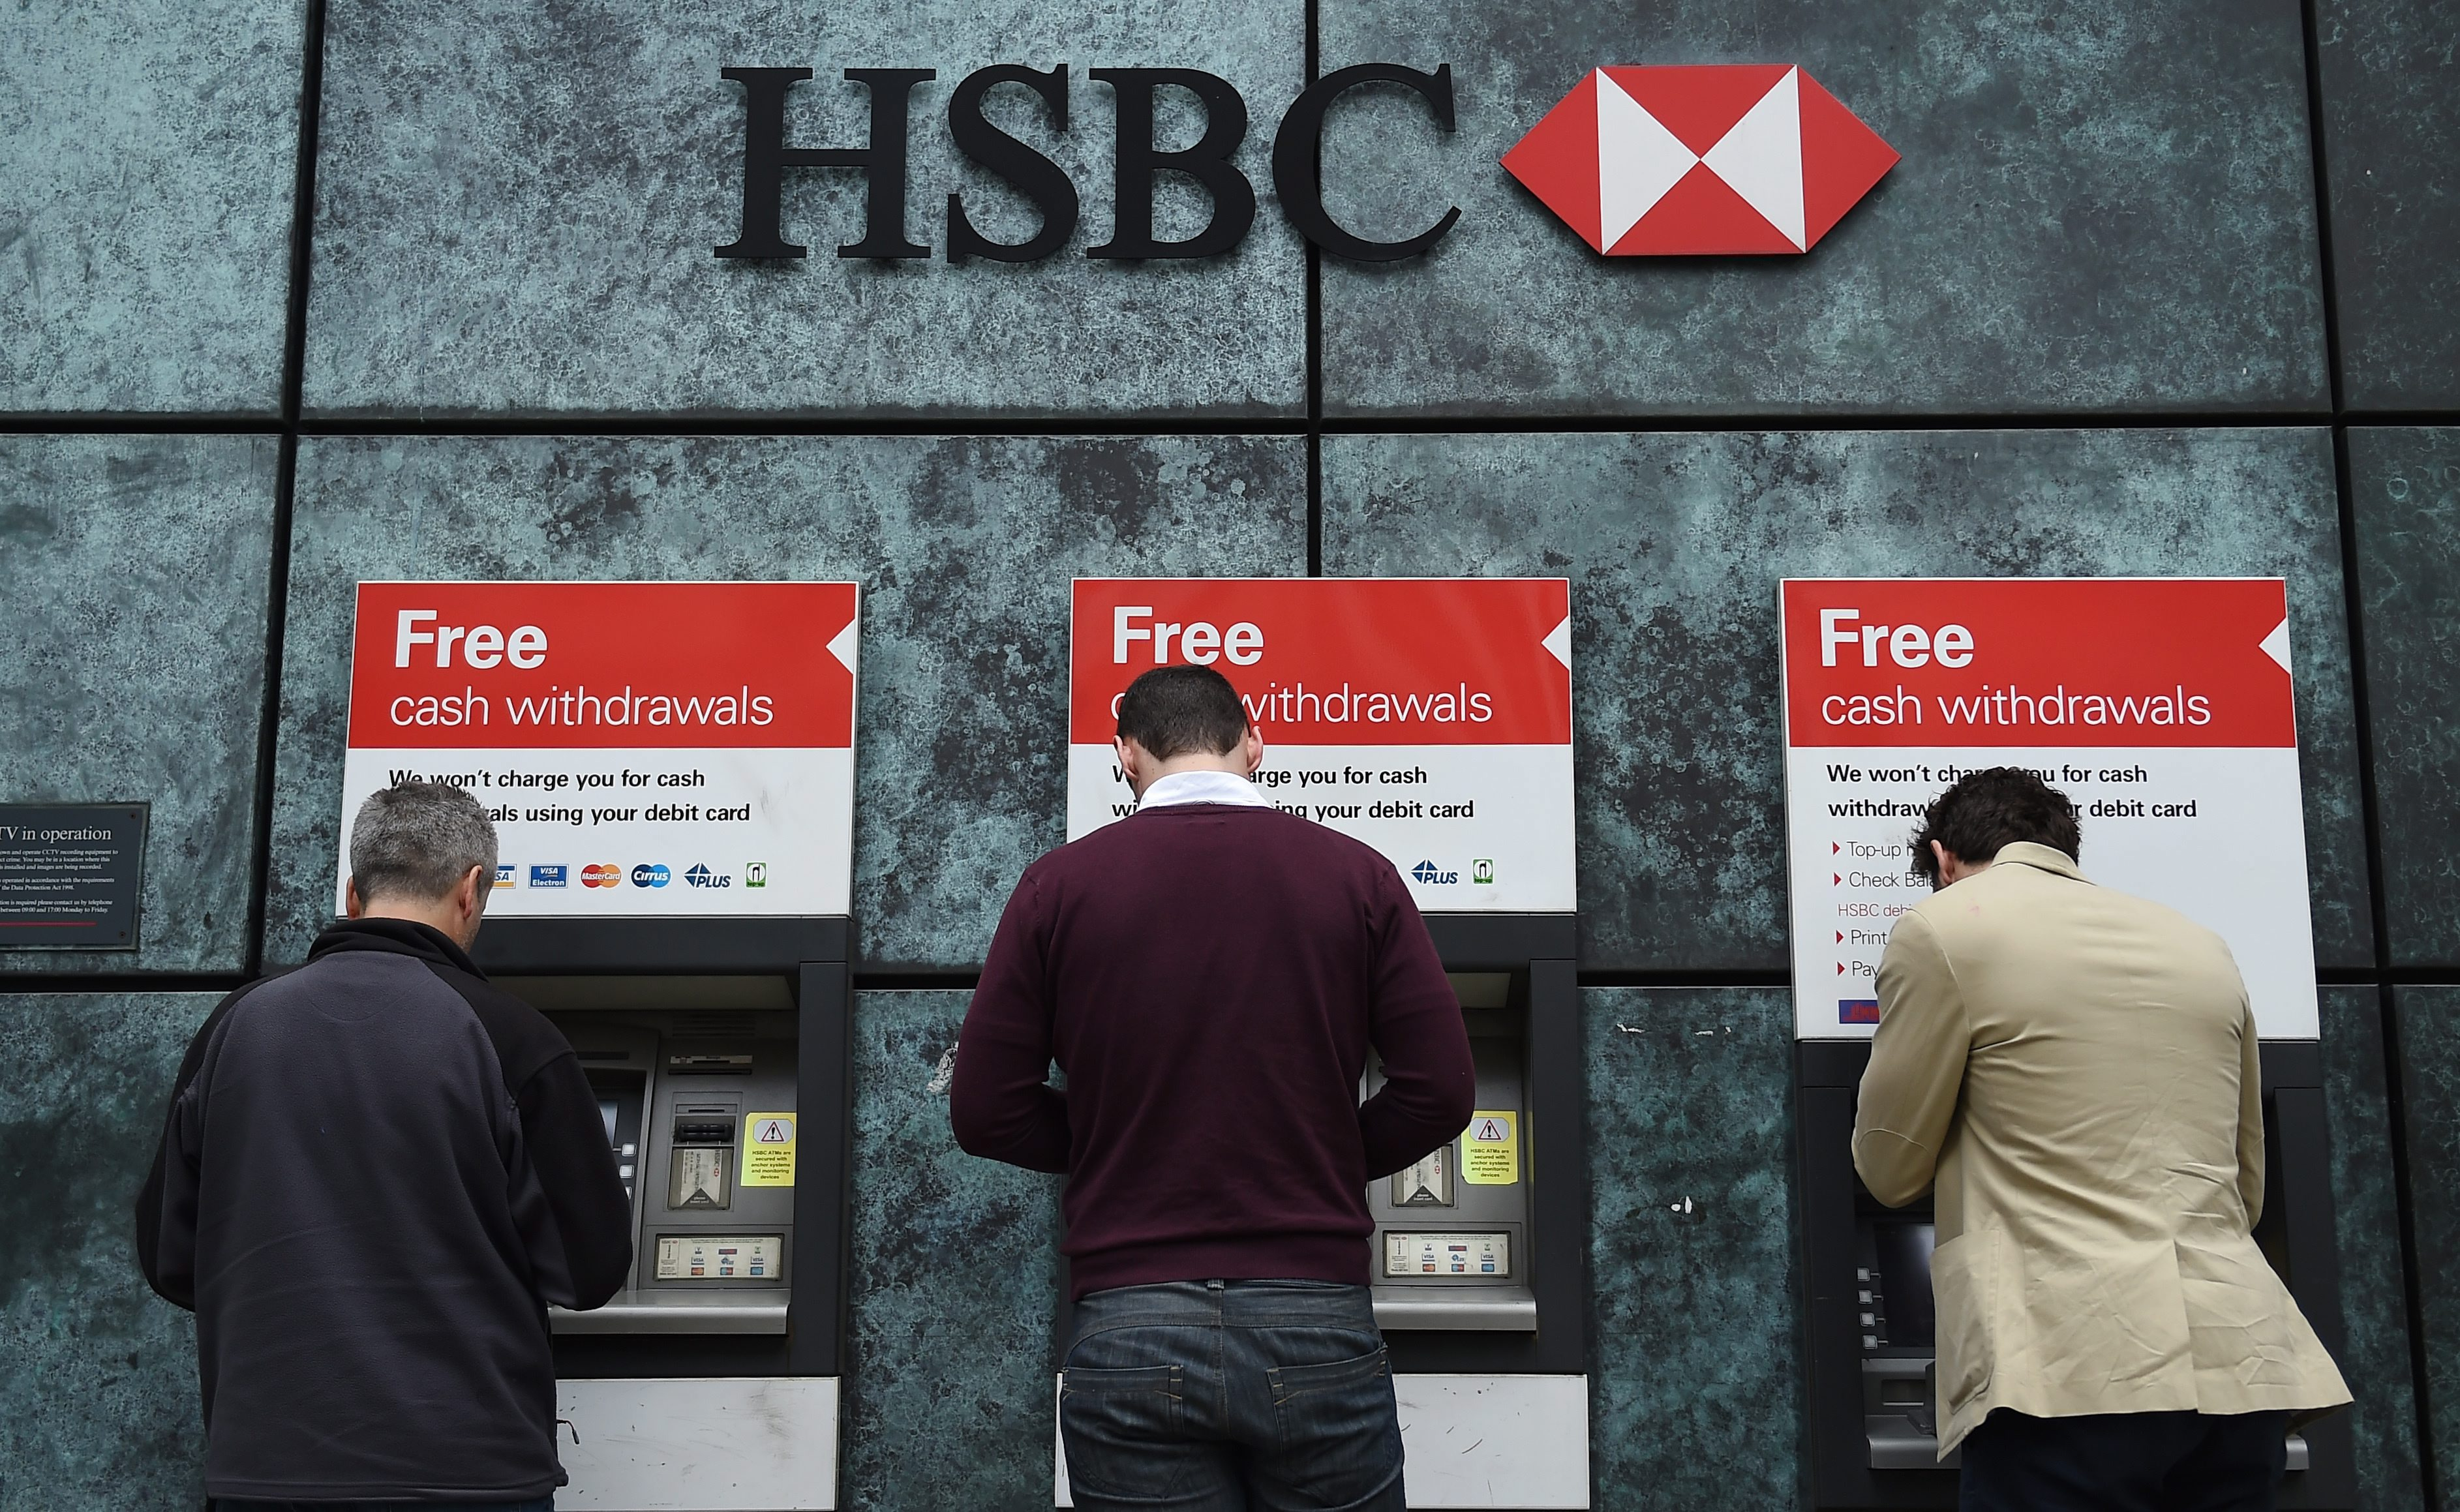 Hsbc considers departure from britain as leaders face resignation hsbc thecheapjerseys Gallery